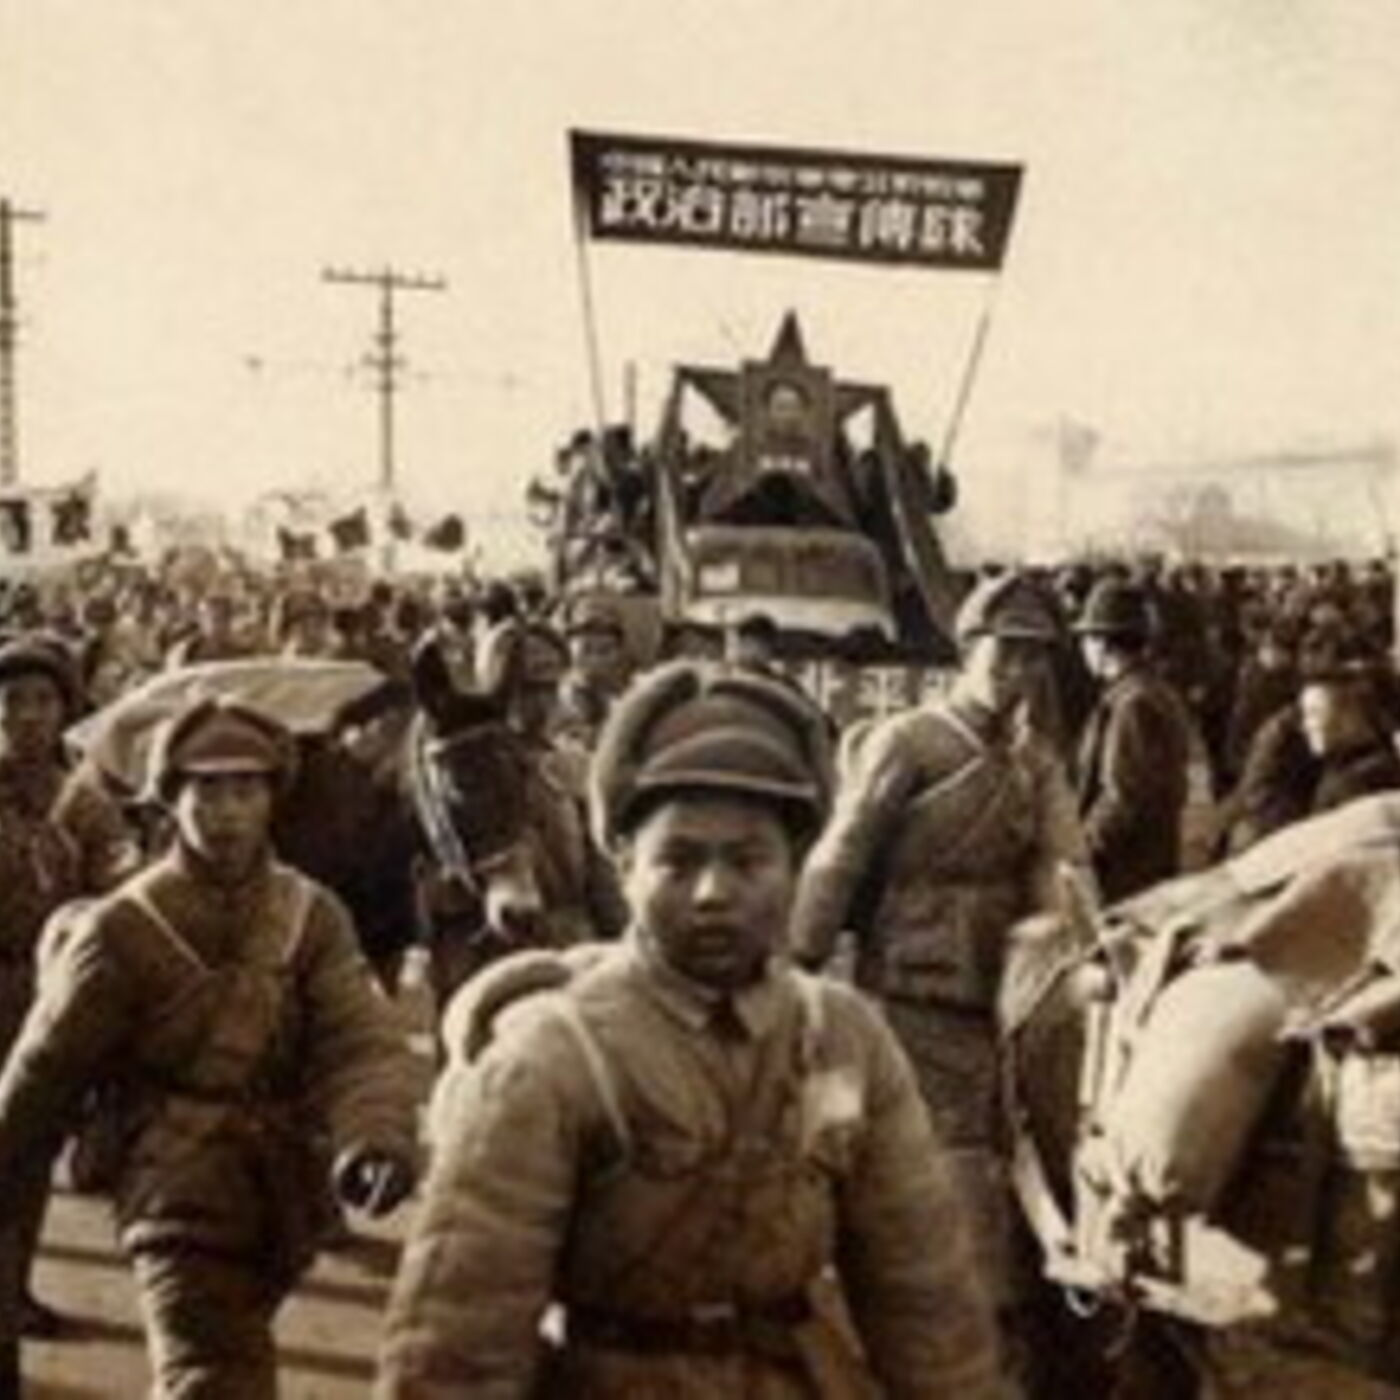 The Nanchang Uprising (August 1, 1927)